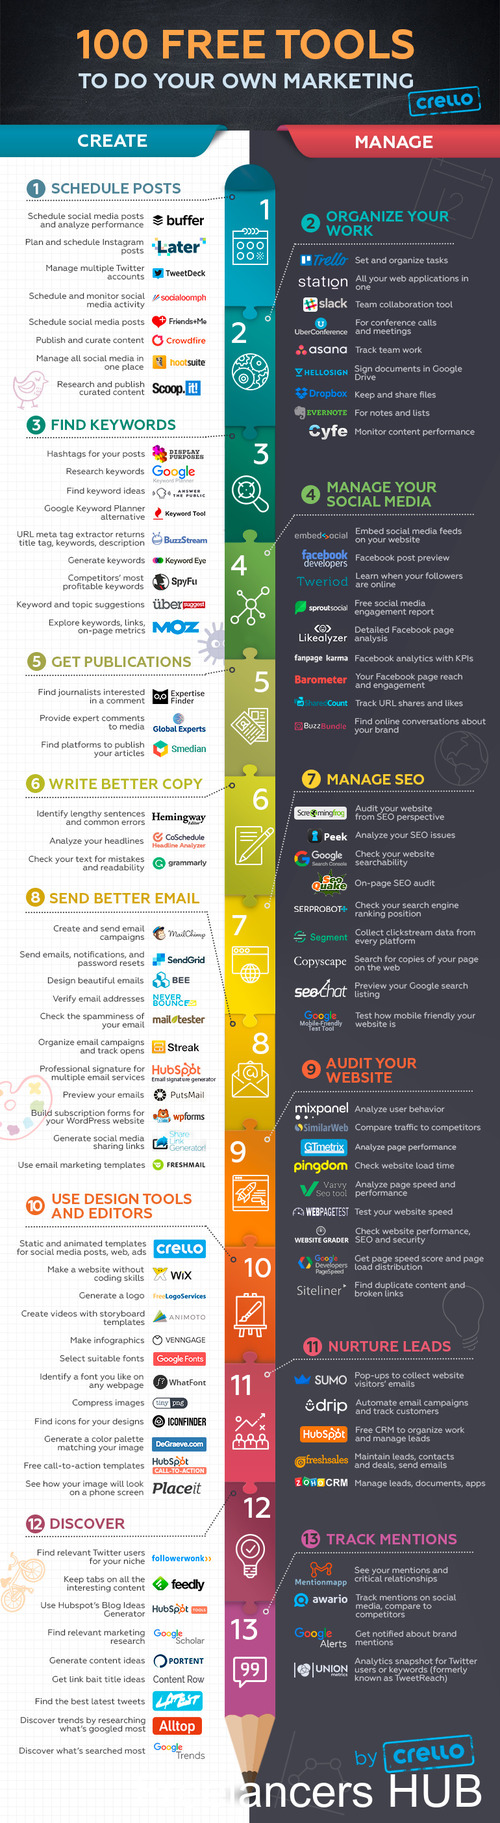 Social Media, SEO, Email, Graphic Design: 100 Free Tools For Digital Marketers (Infographic) / Digital Information World